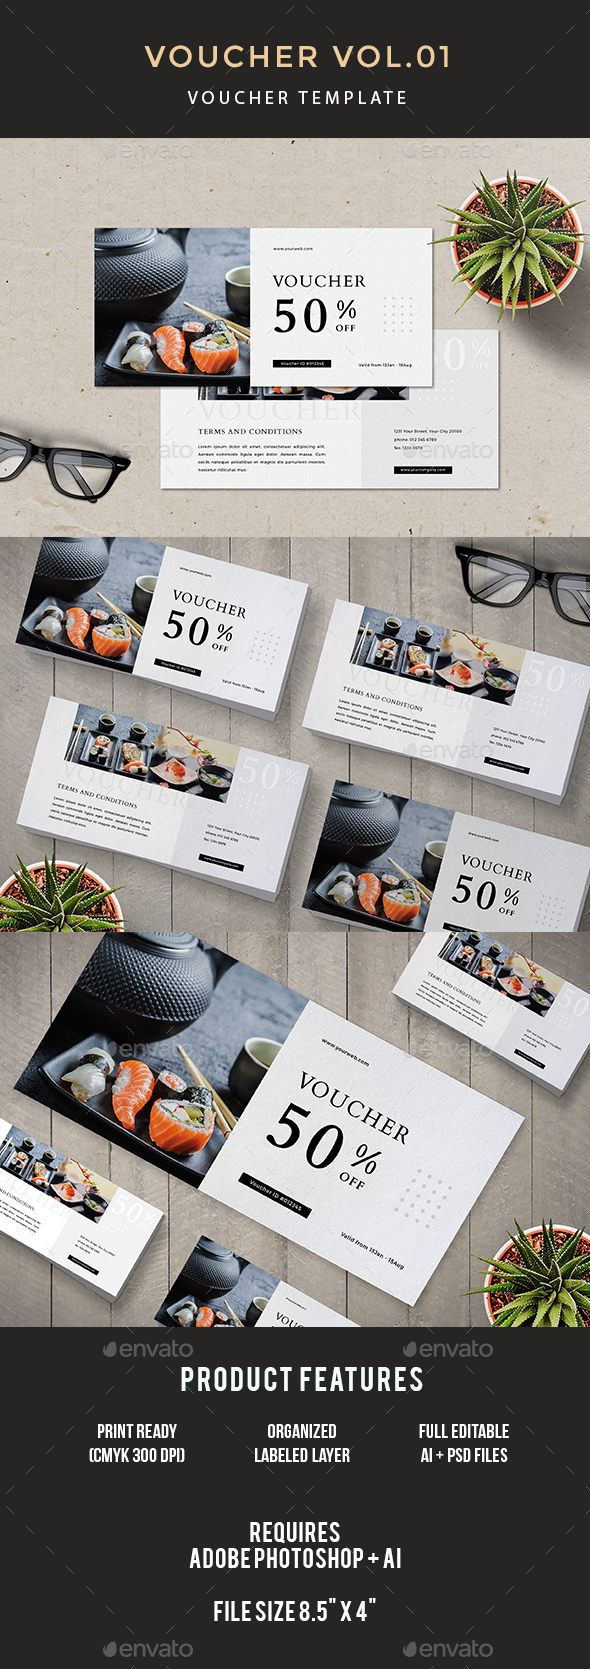 Voucher - Loyalty Cards Cards & Invites